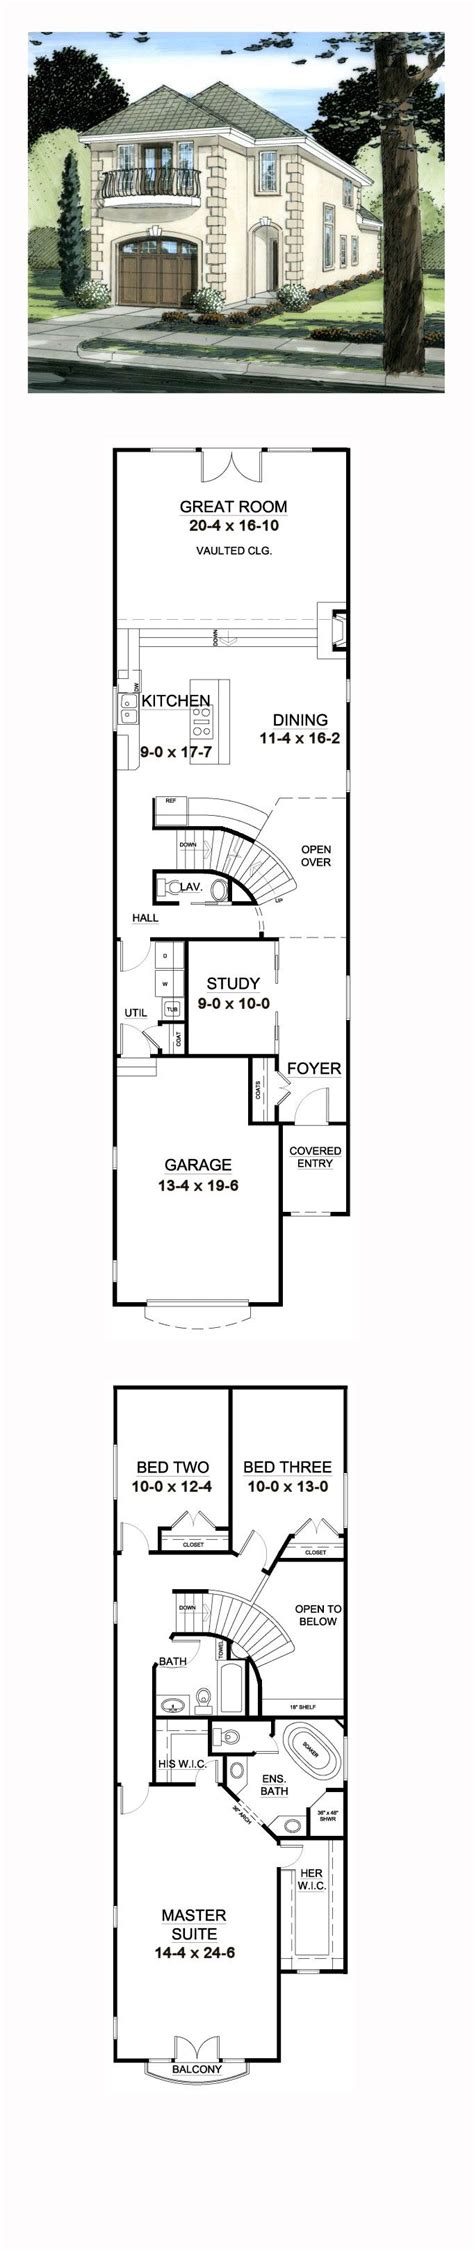 narrow house plans the 25 best narrow house plans ideas on